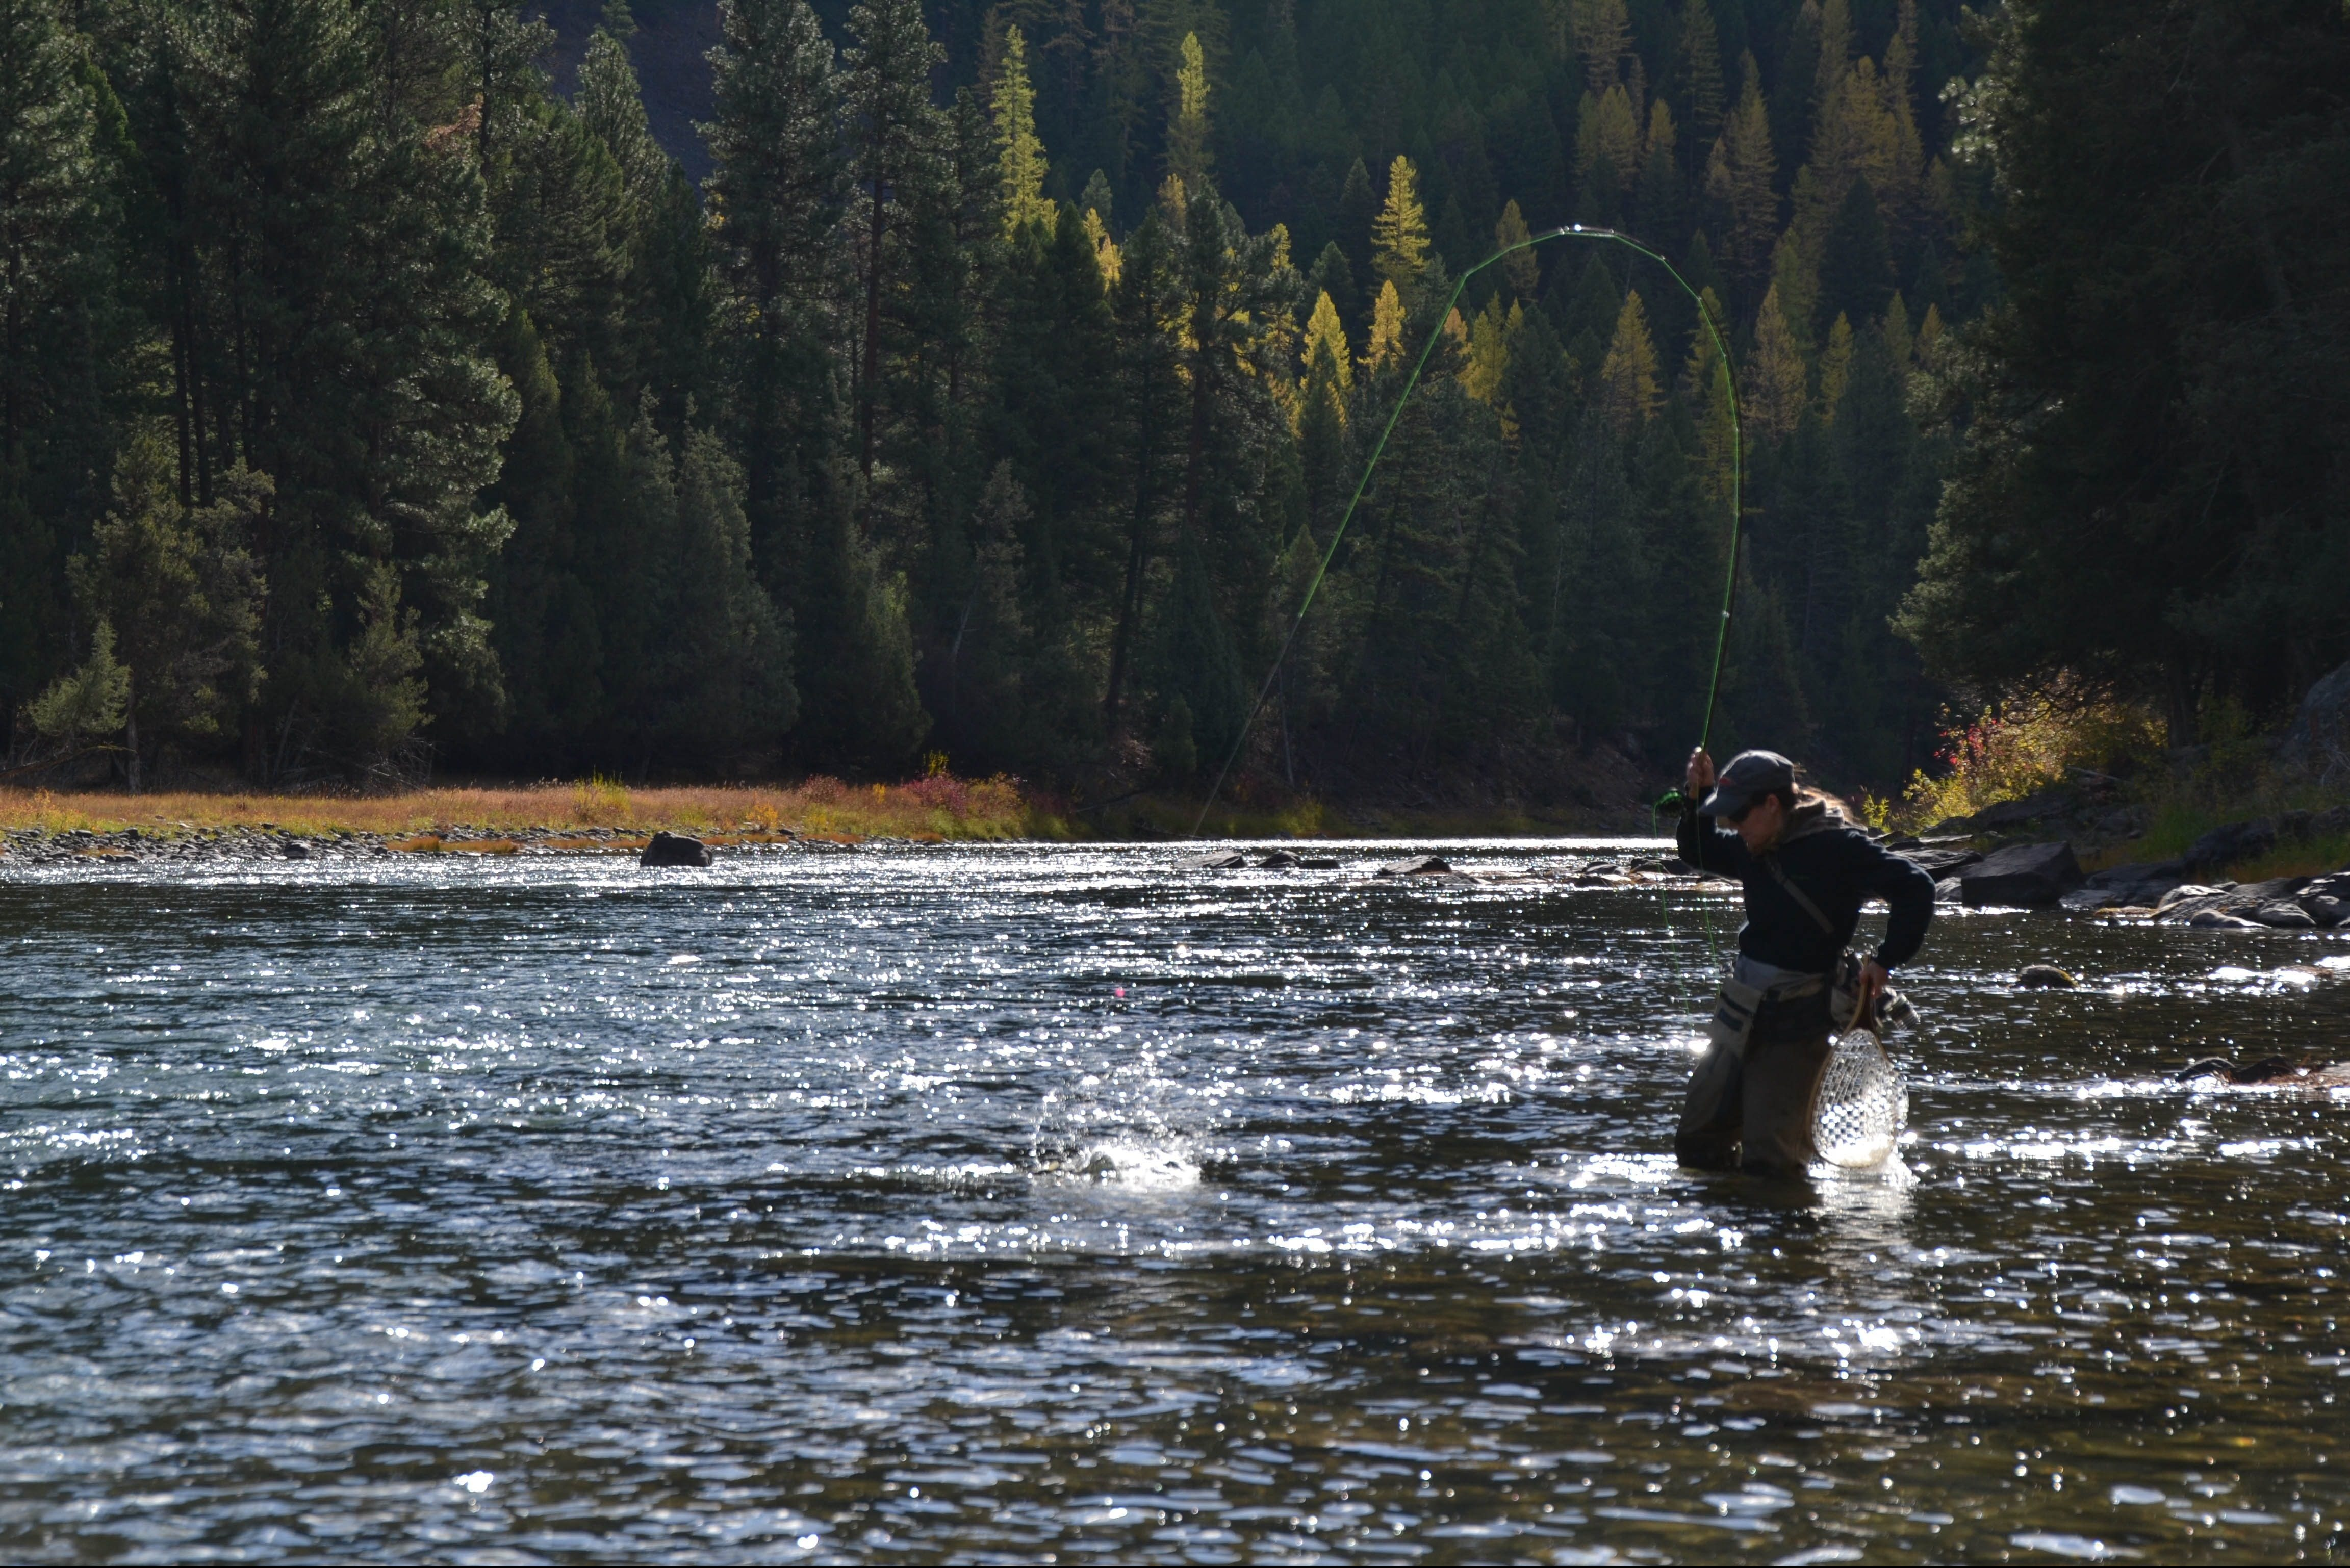 A woman brings in a fish on a fly rod while wading in a river.